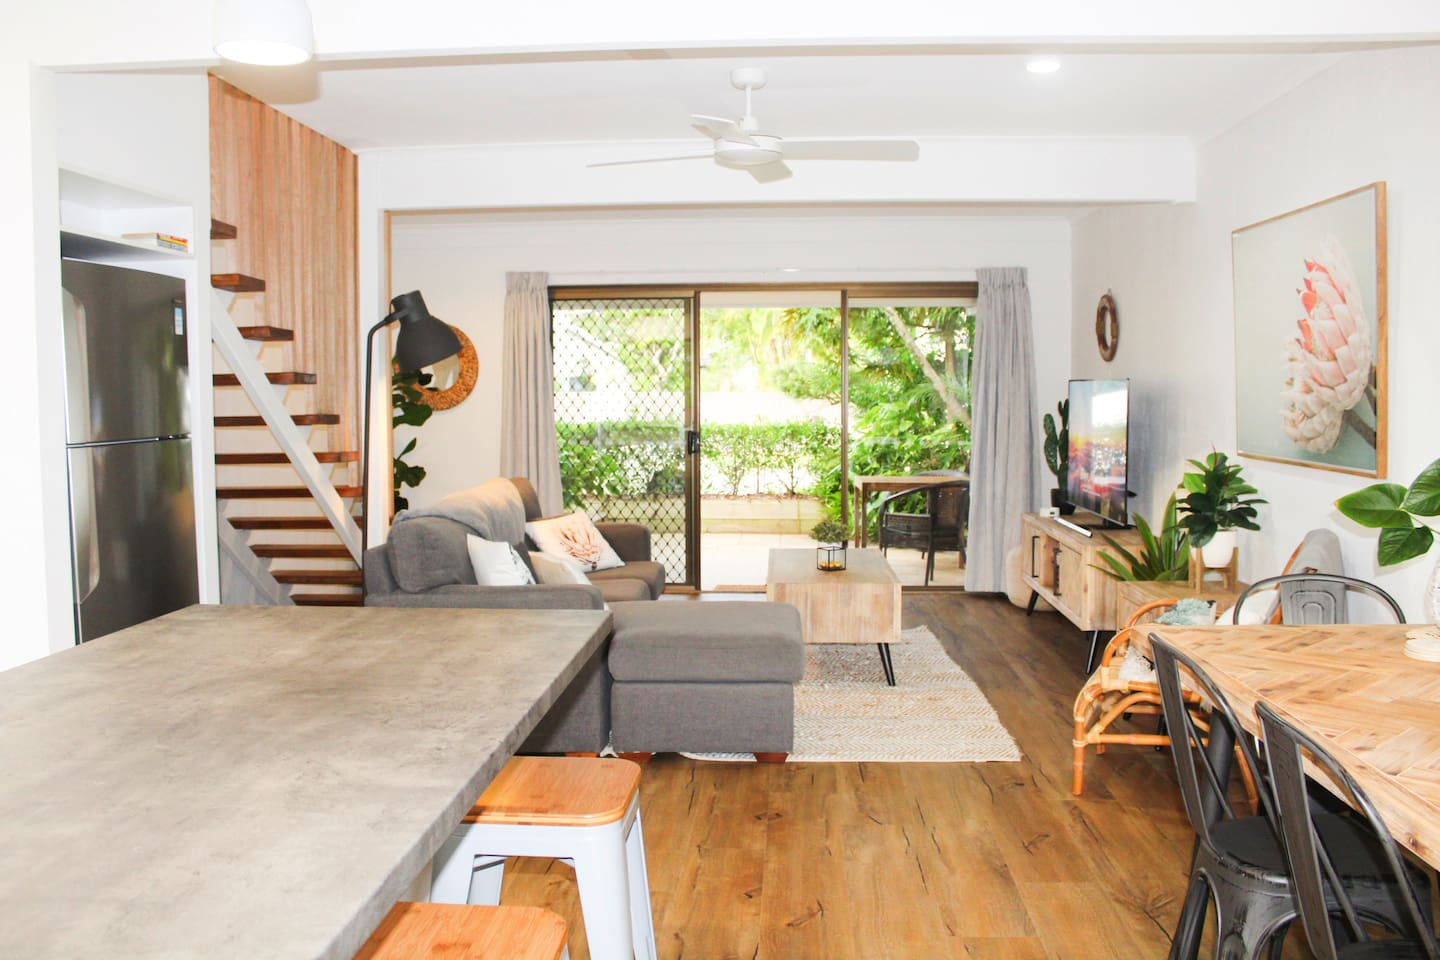 Gorgeously renovated modern apartment in awesome location (close to everything, yet tucked away from the chaos!)